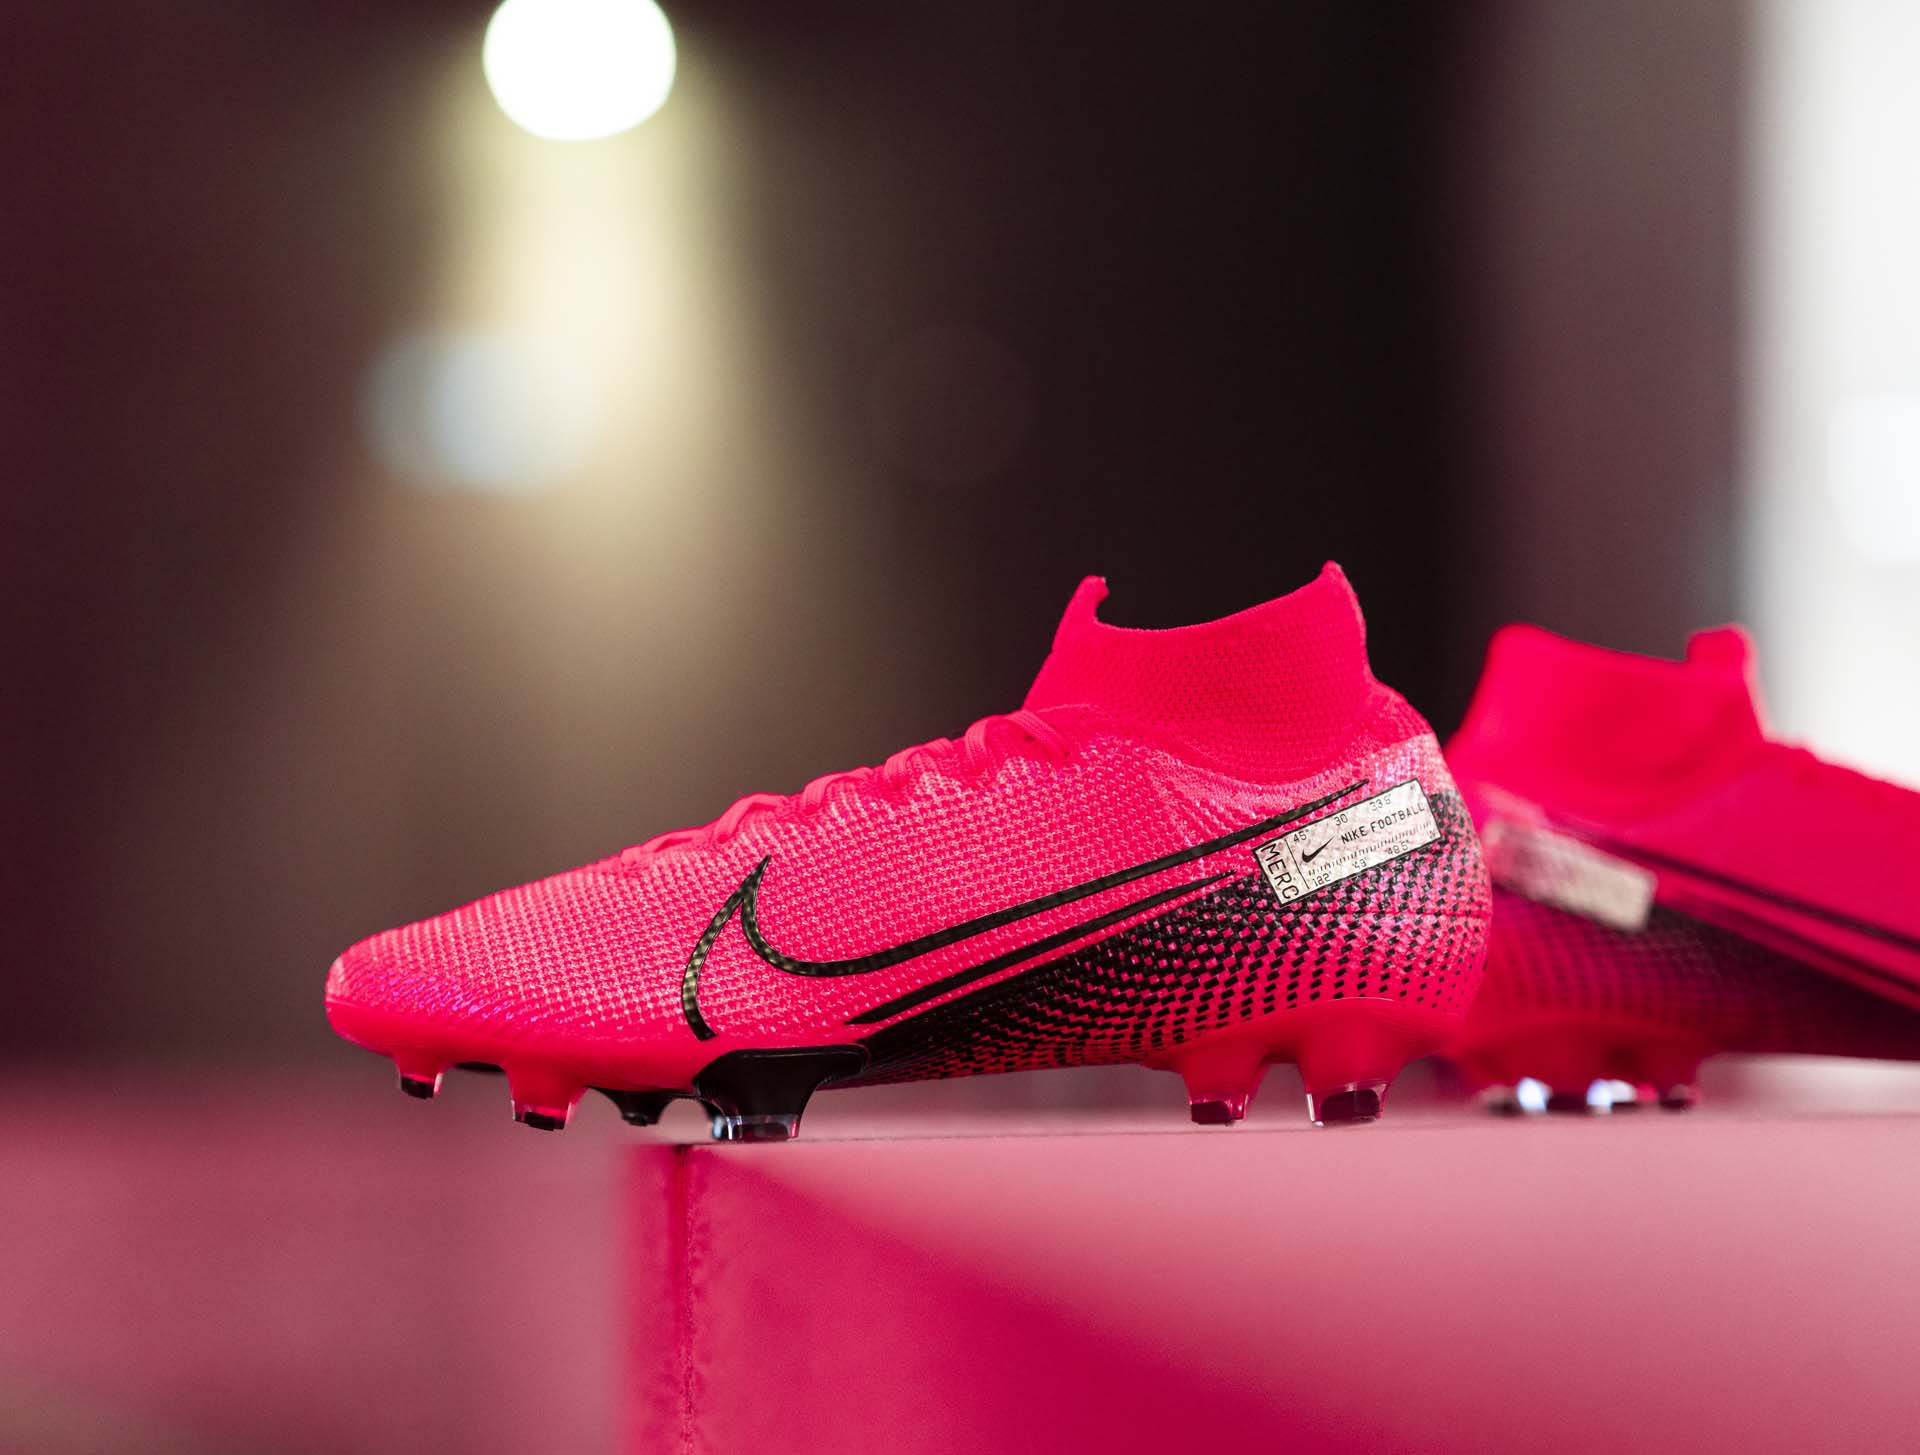 12-nike-future-lac-mercurial-collection-min.jpg